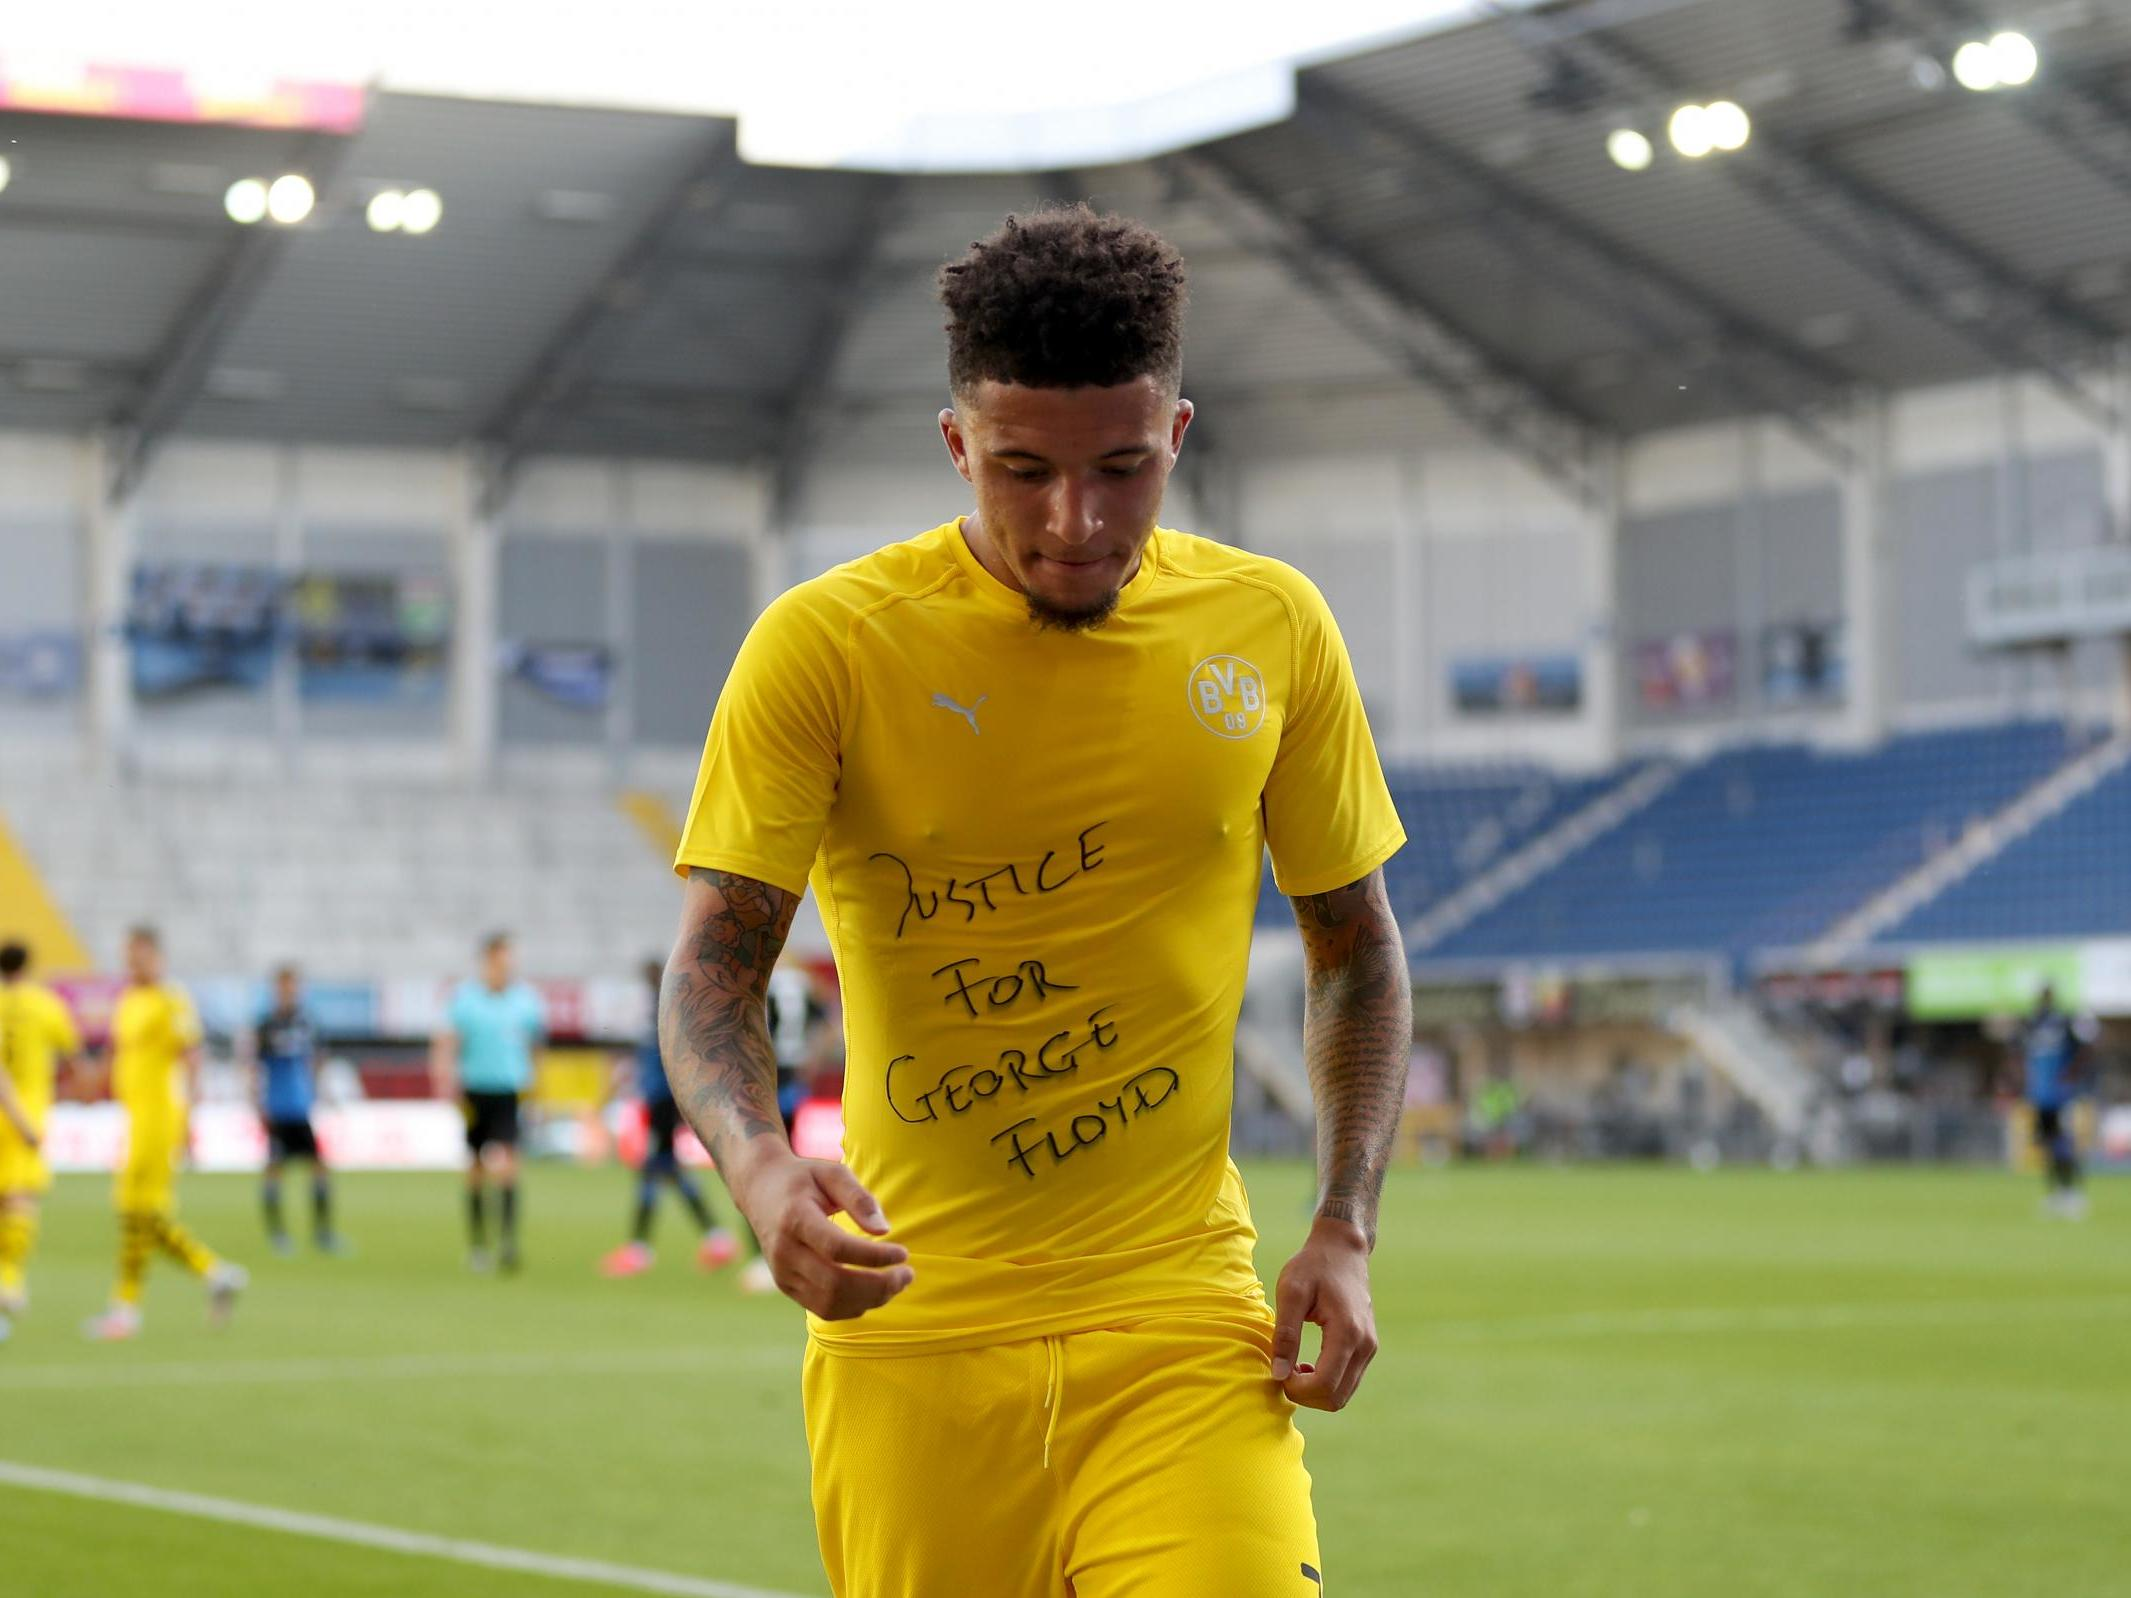 Jadon Sancho and other Bundesliga players who called for 'Justice for George Floyd' won't face disciplinary action